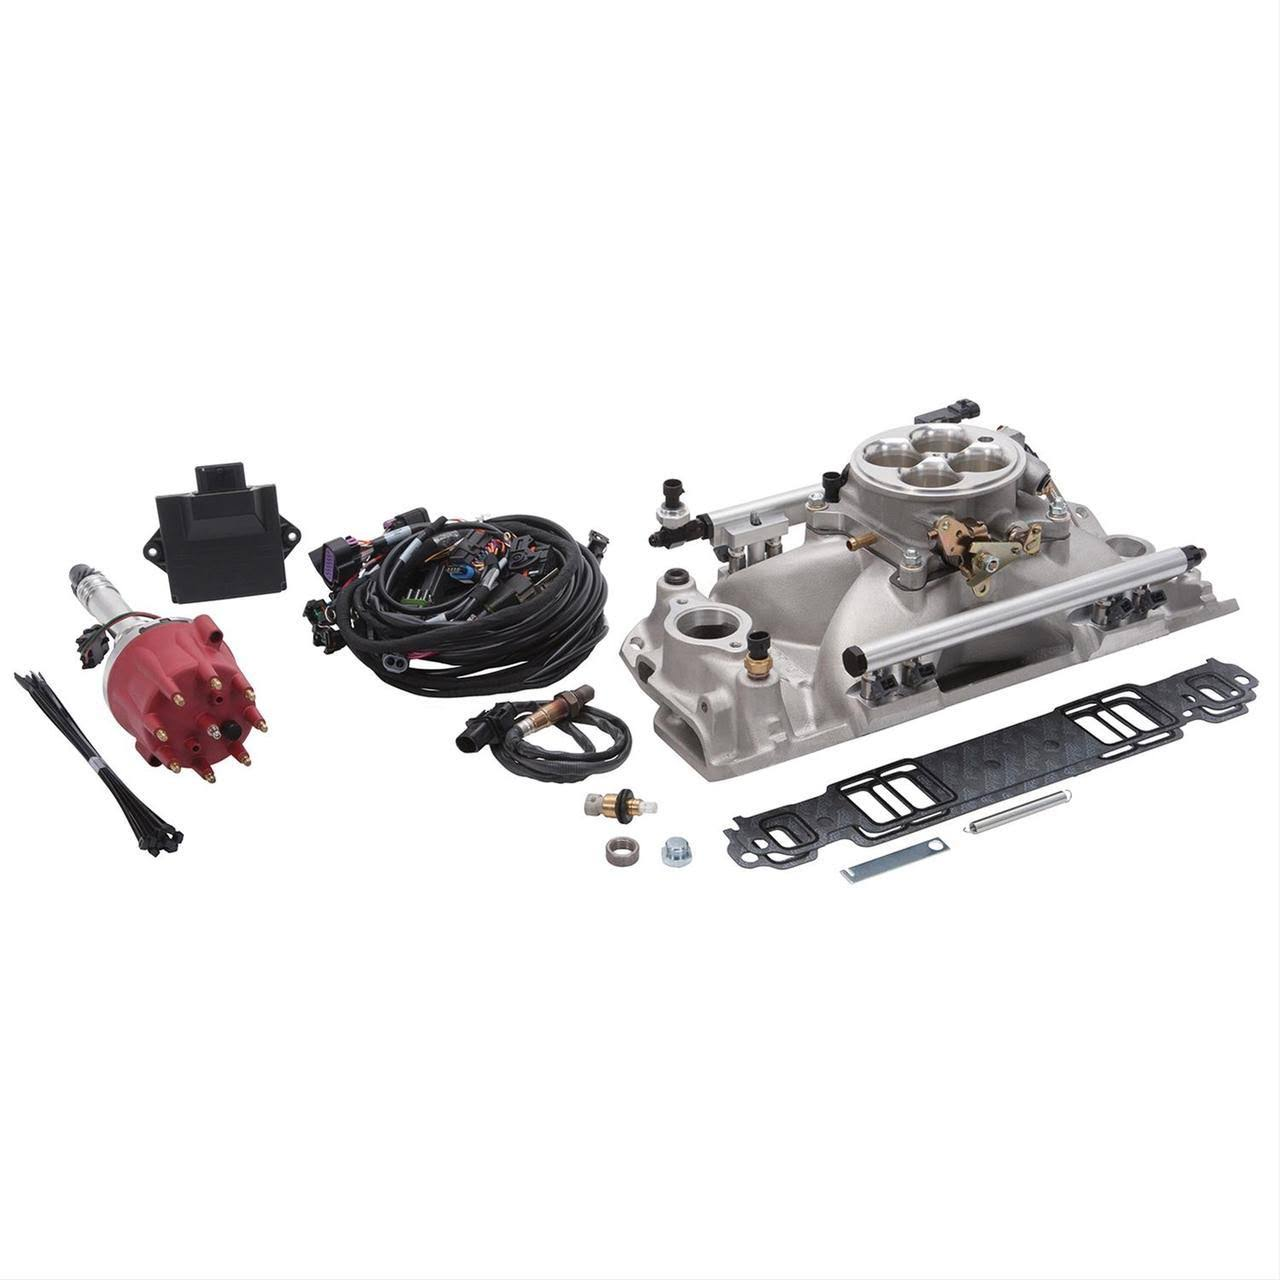 Edelbrock Pro-Flo 4 EFI System for 1986 & Earlier Small-Block Chevy Engines 357600